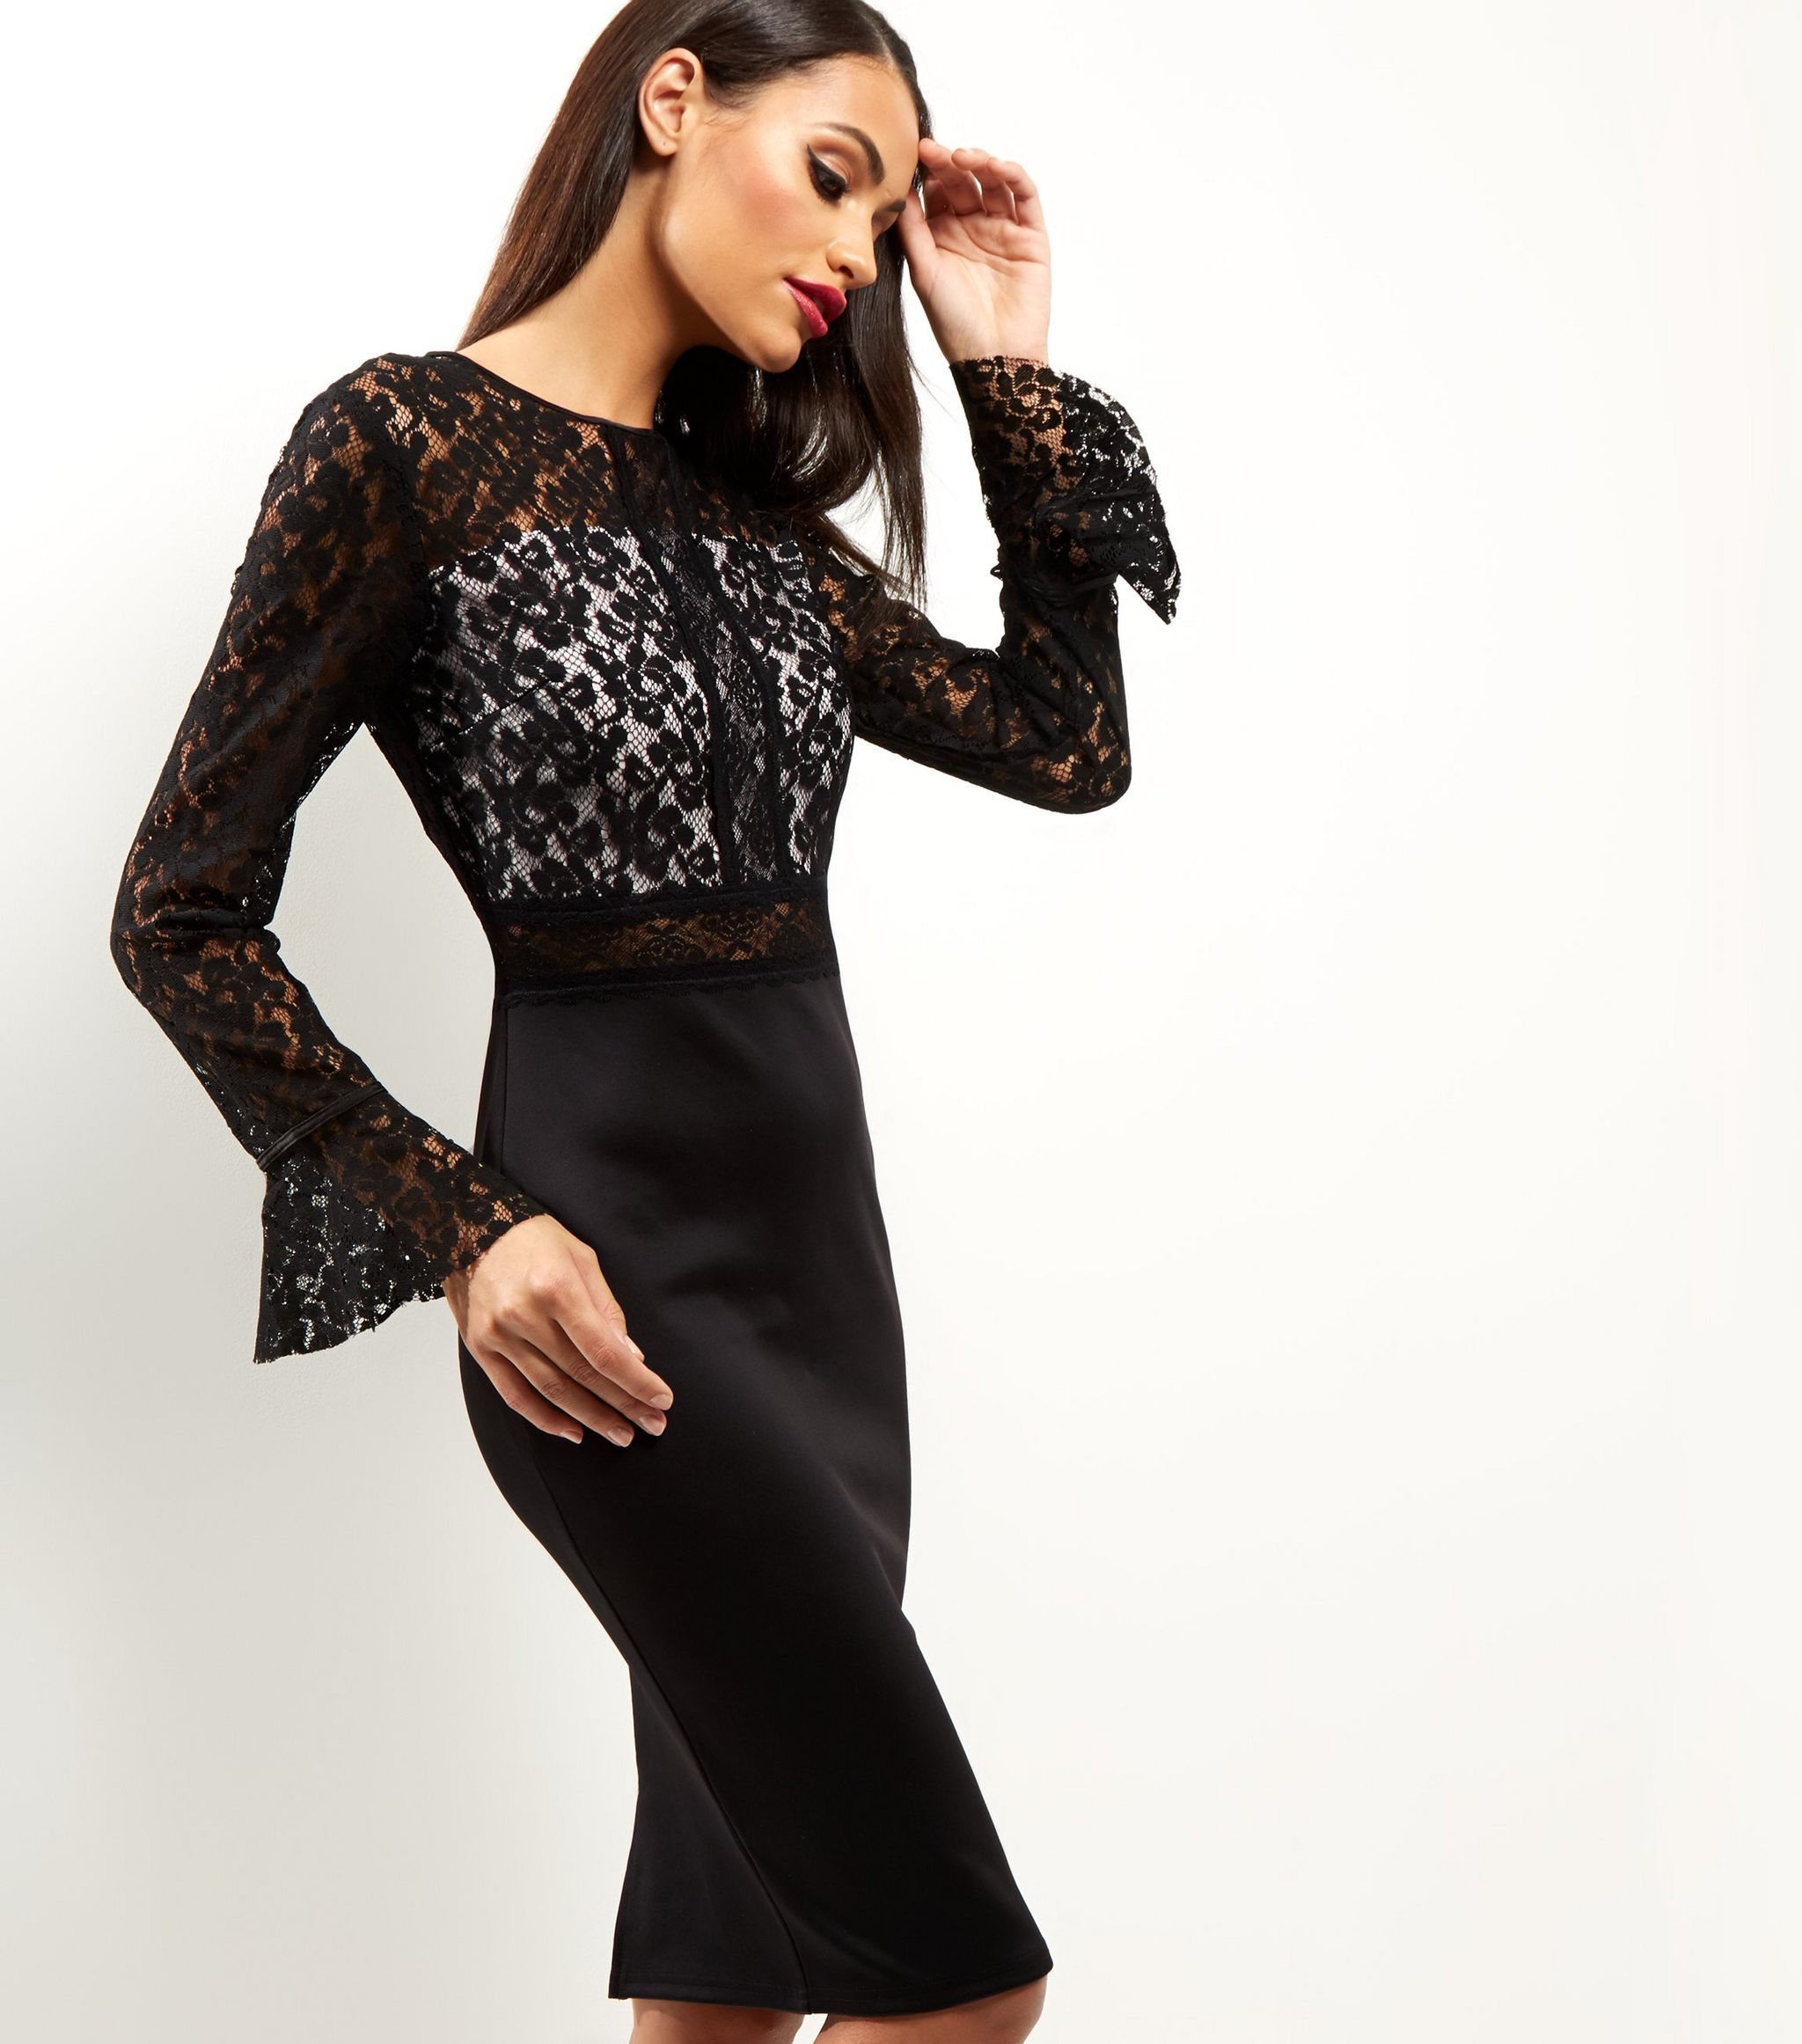 Long sleeve dresses to wear to a wedding  AX Paris Black Lace Long Sleeve Midi Dress  New Look  My style